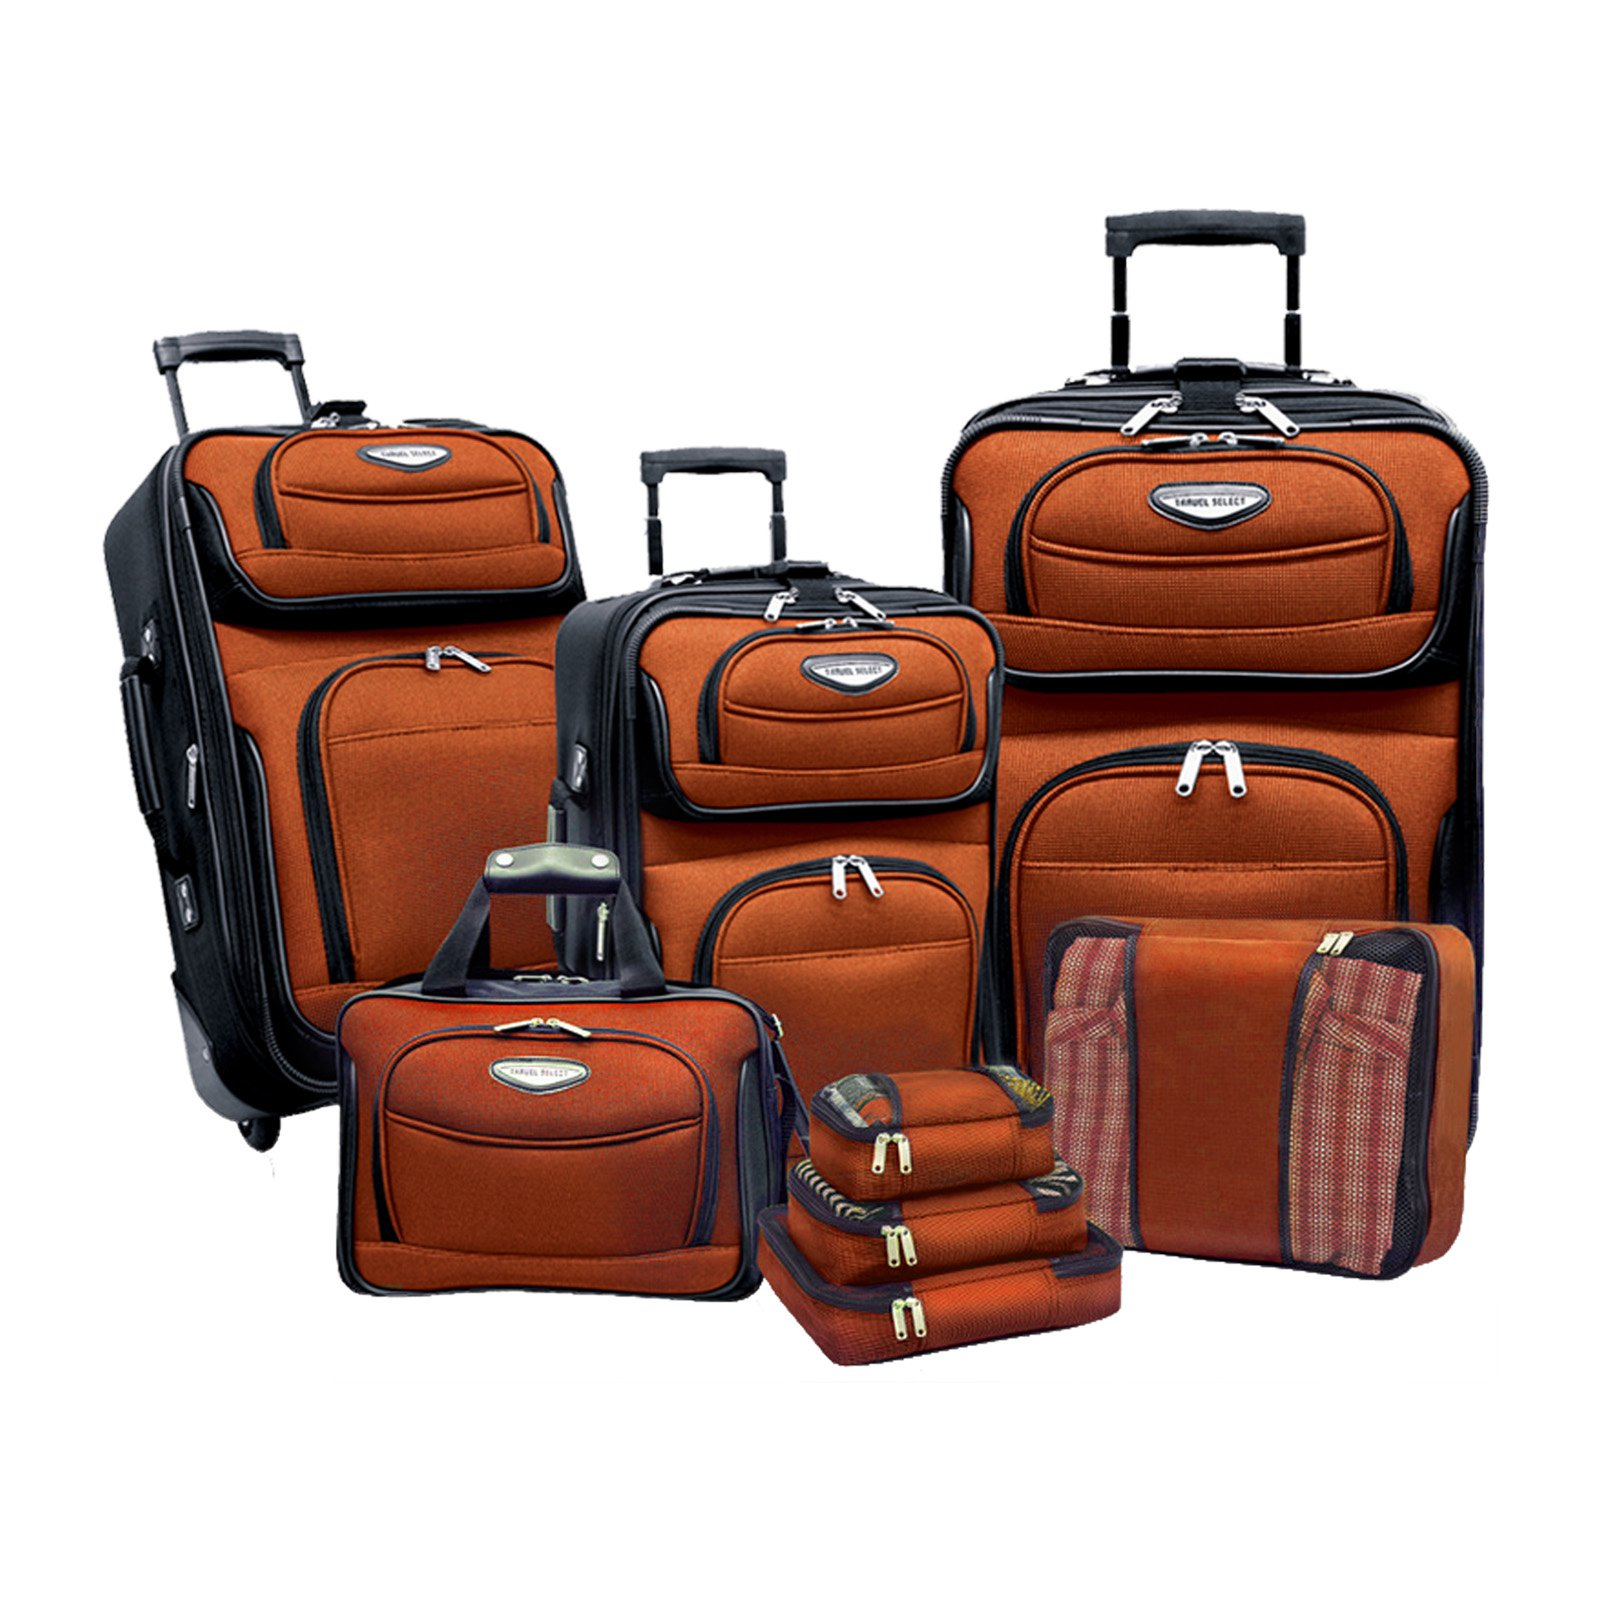 Traveler's Choice Travel Select Amsterdam 8-Piece Softshell Deluxe Expandable Rolling Luggage Set with Packing Cubes